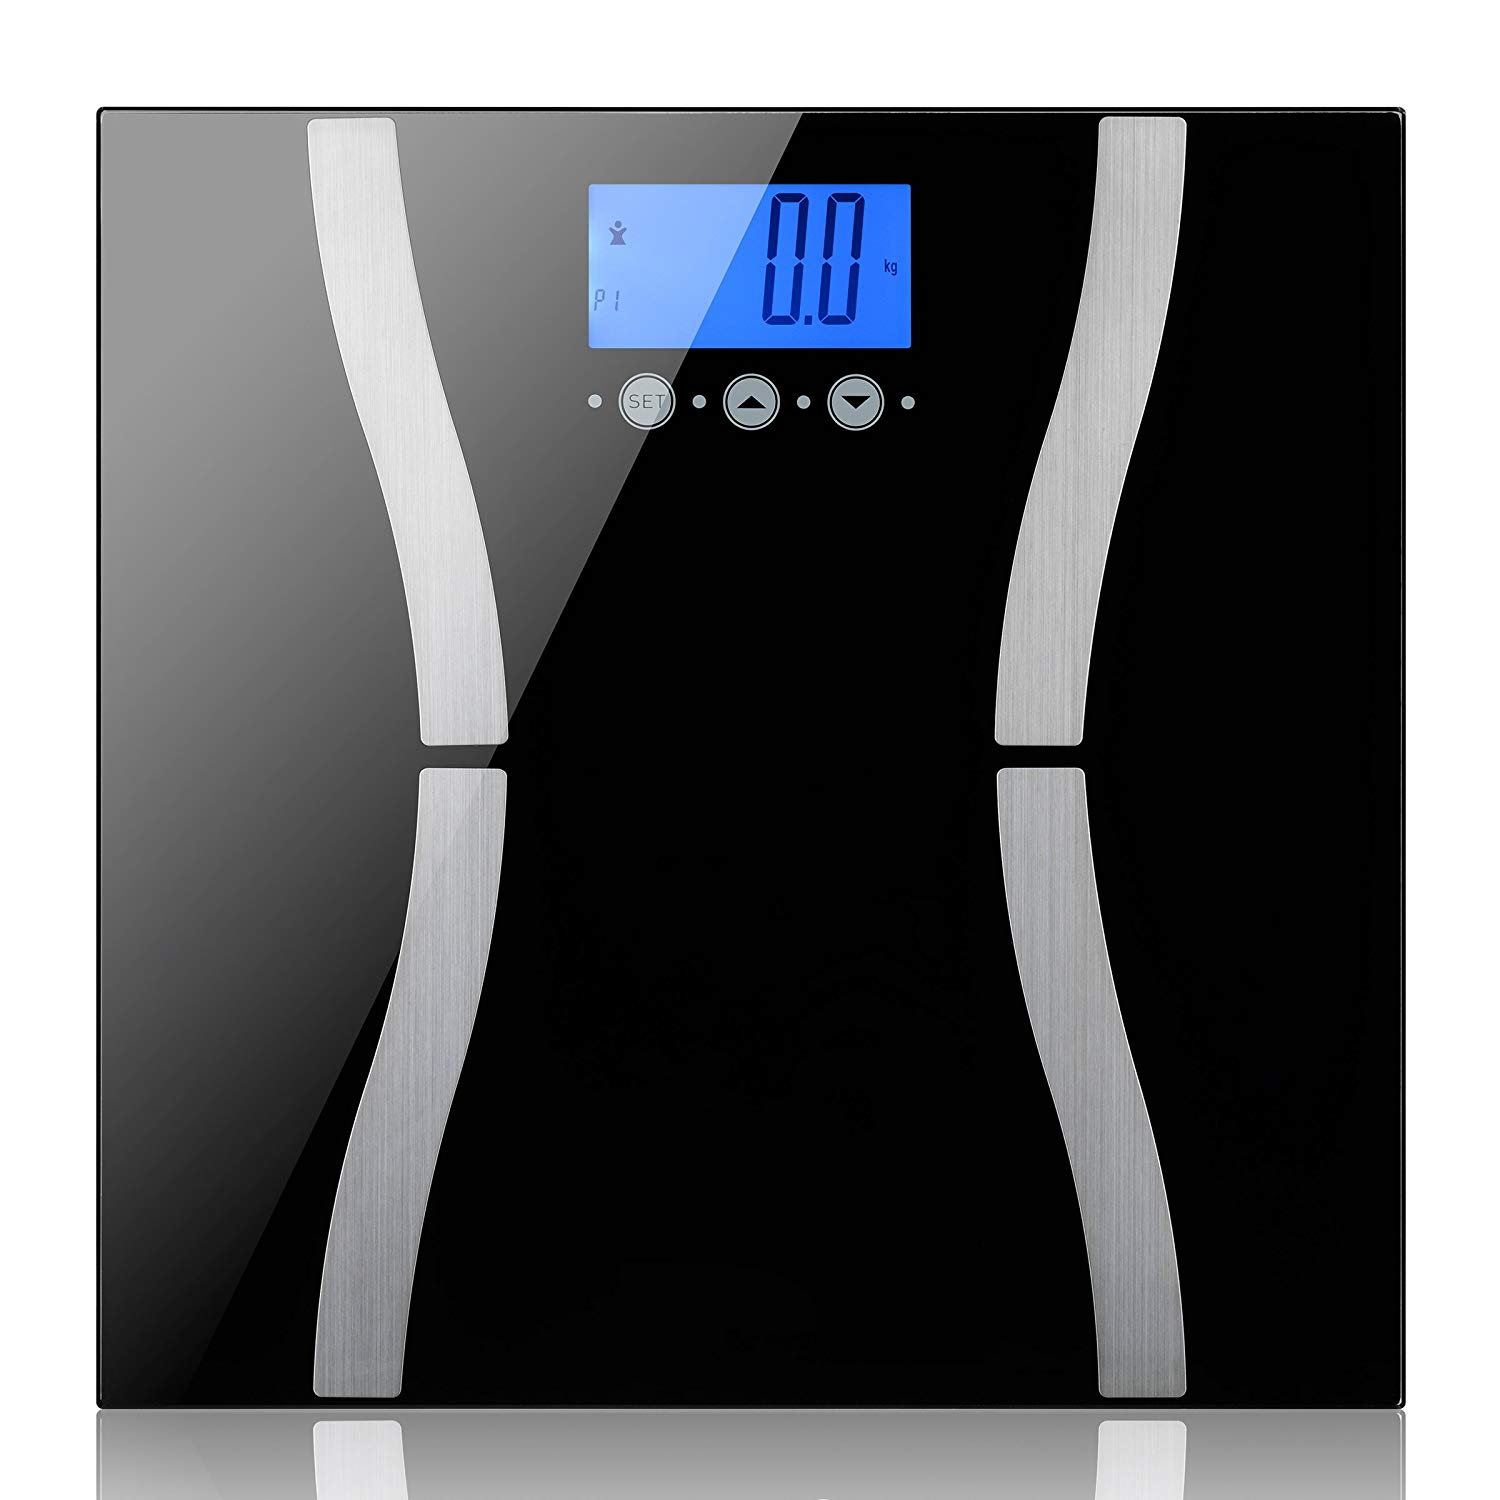 Cheap Salter Body Fat Scales Find Salter Body Fat Scales Deals On